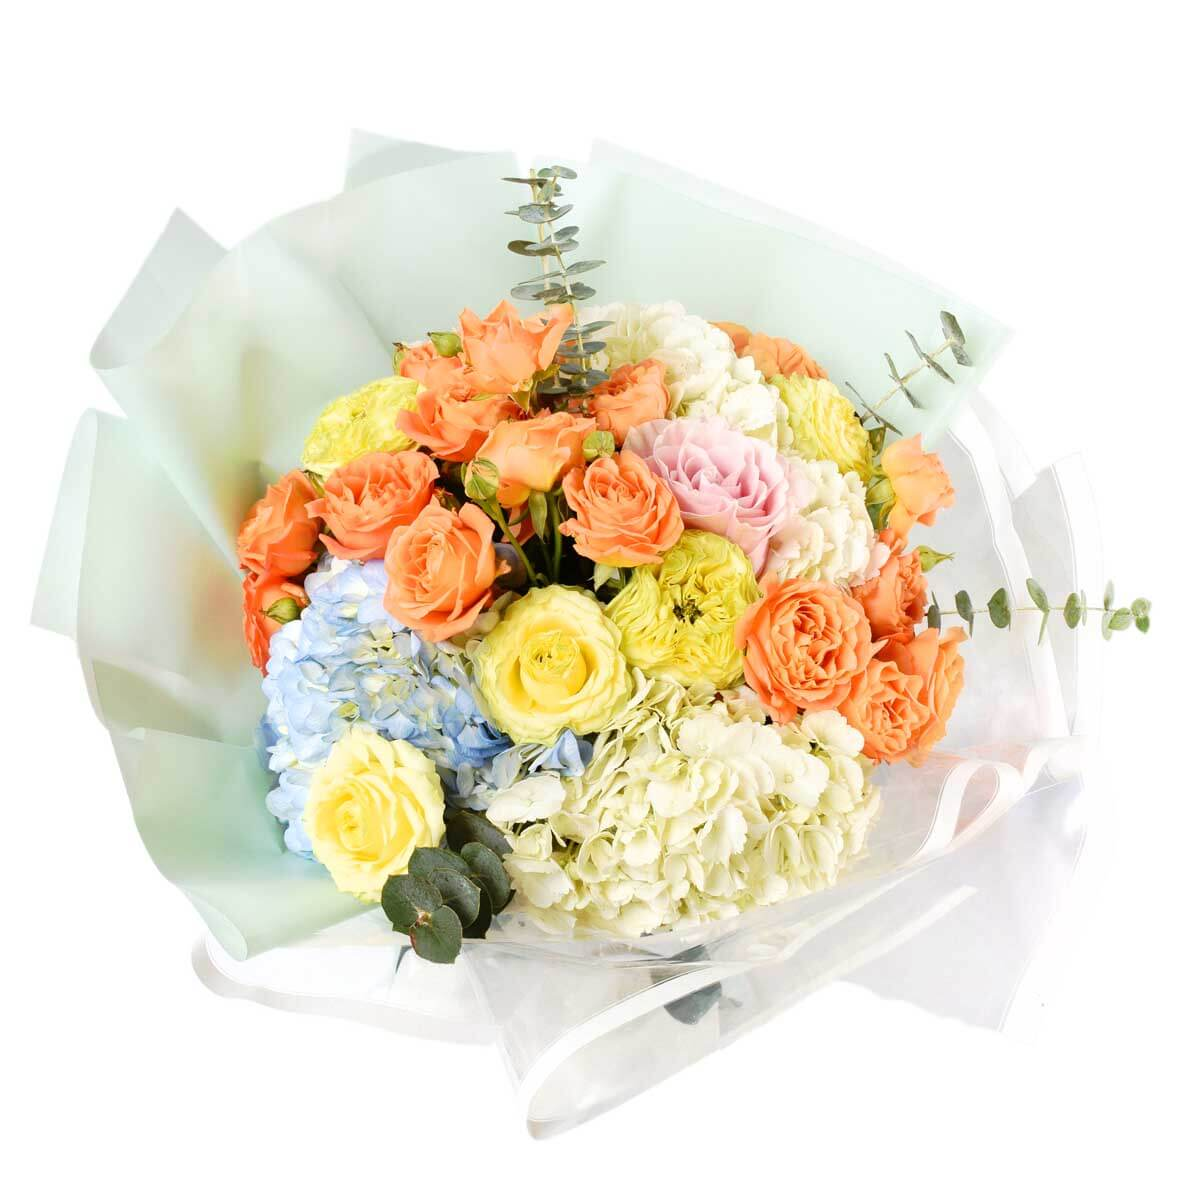 Burnaby Florist | Flower Delivery Service by Adele Rae